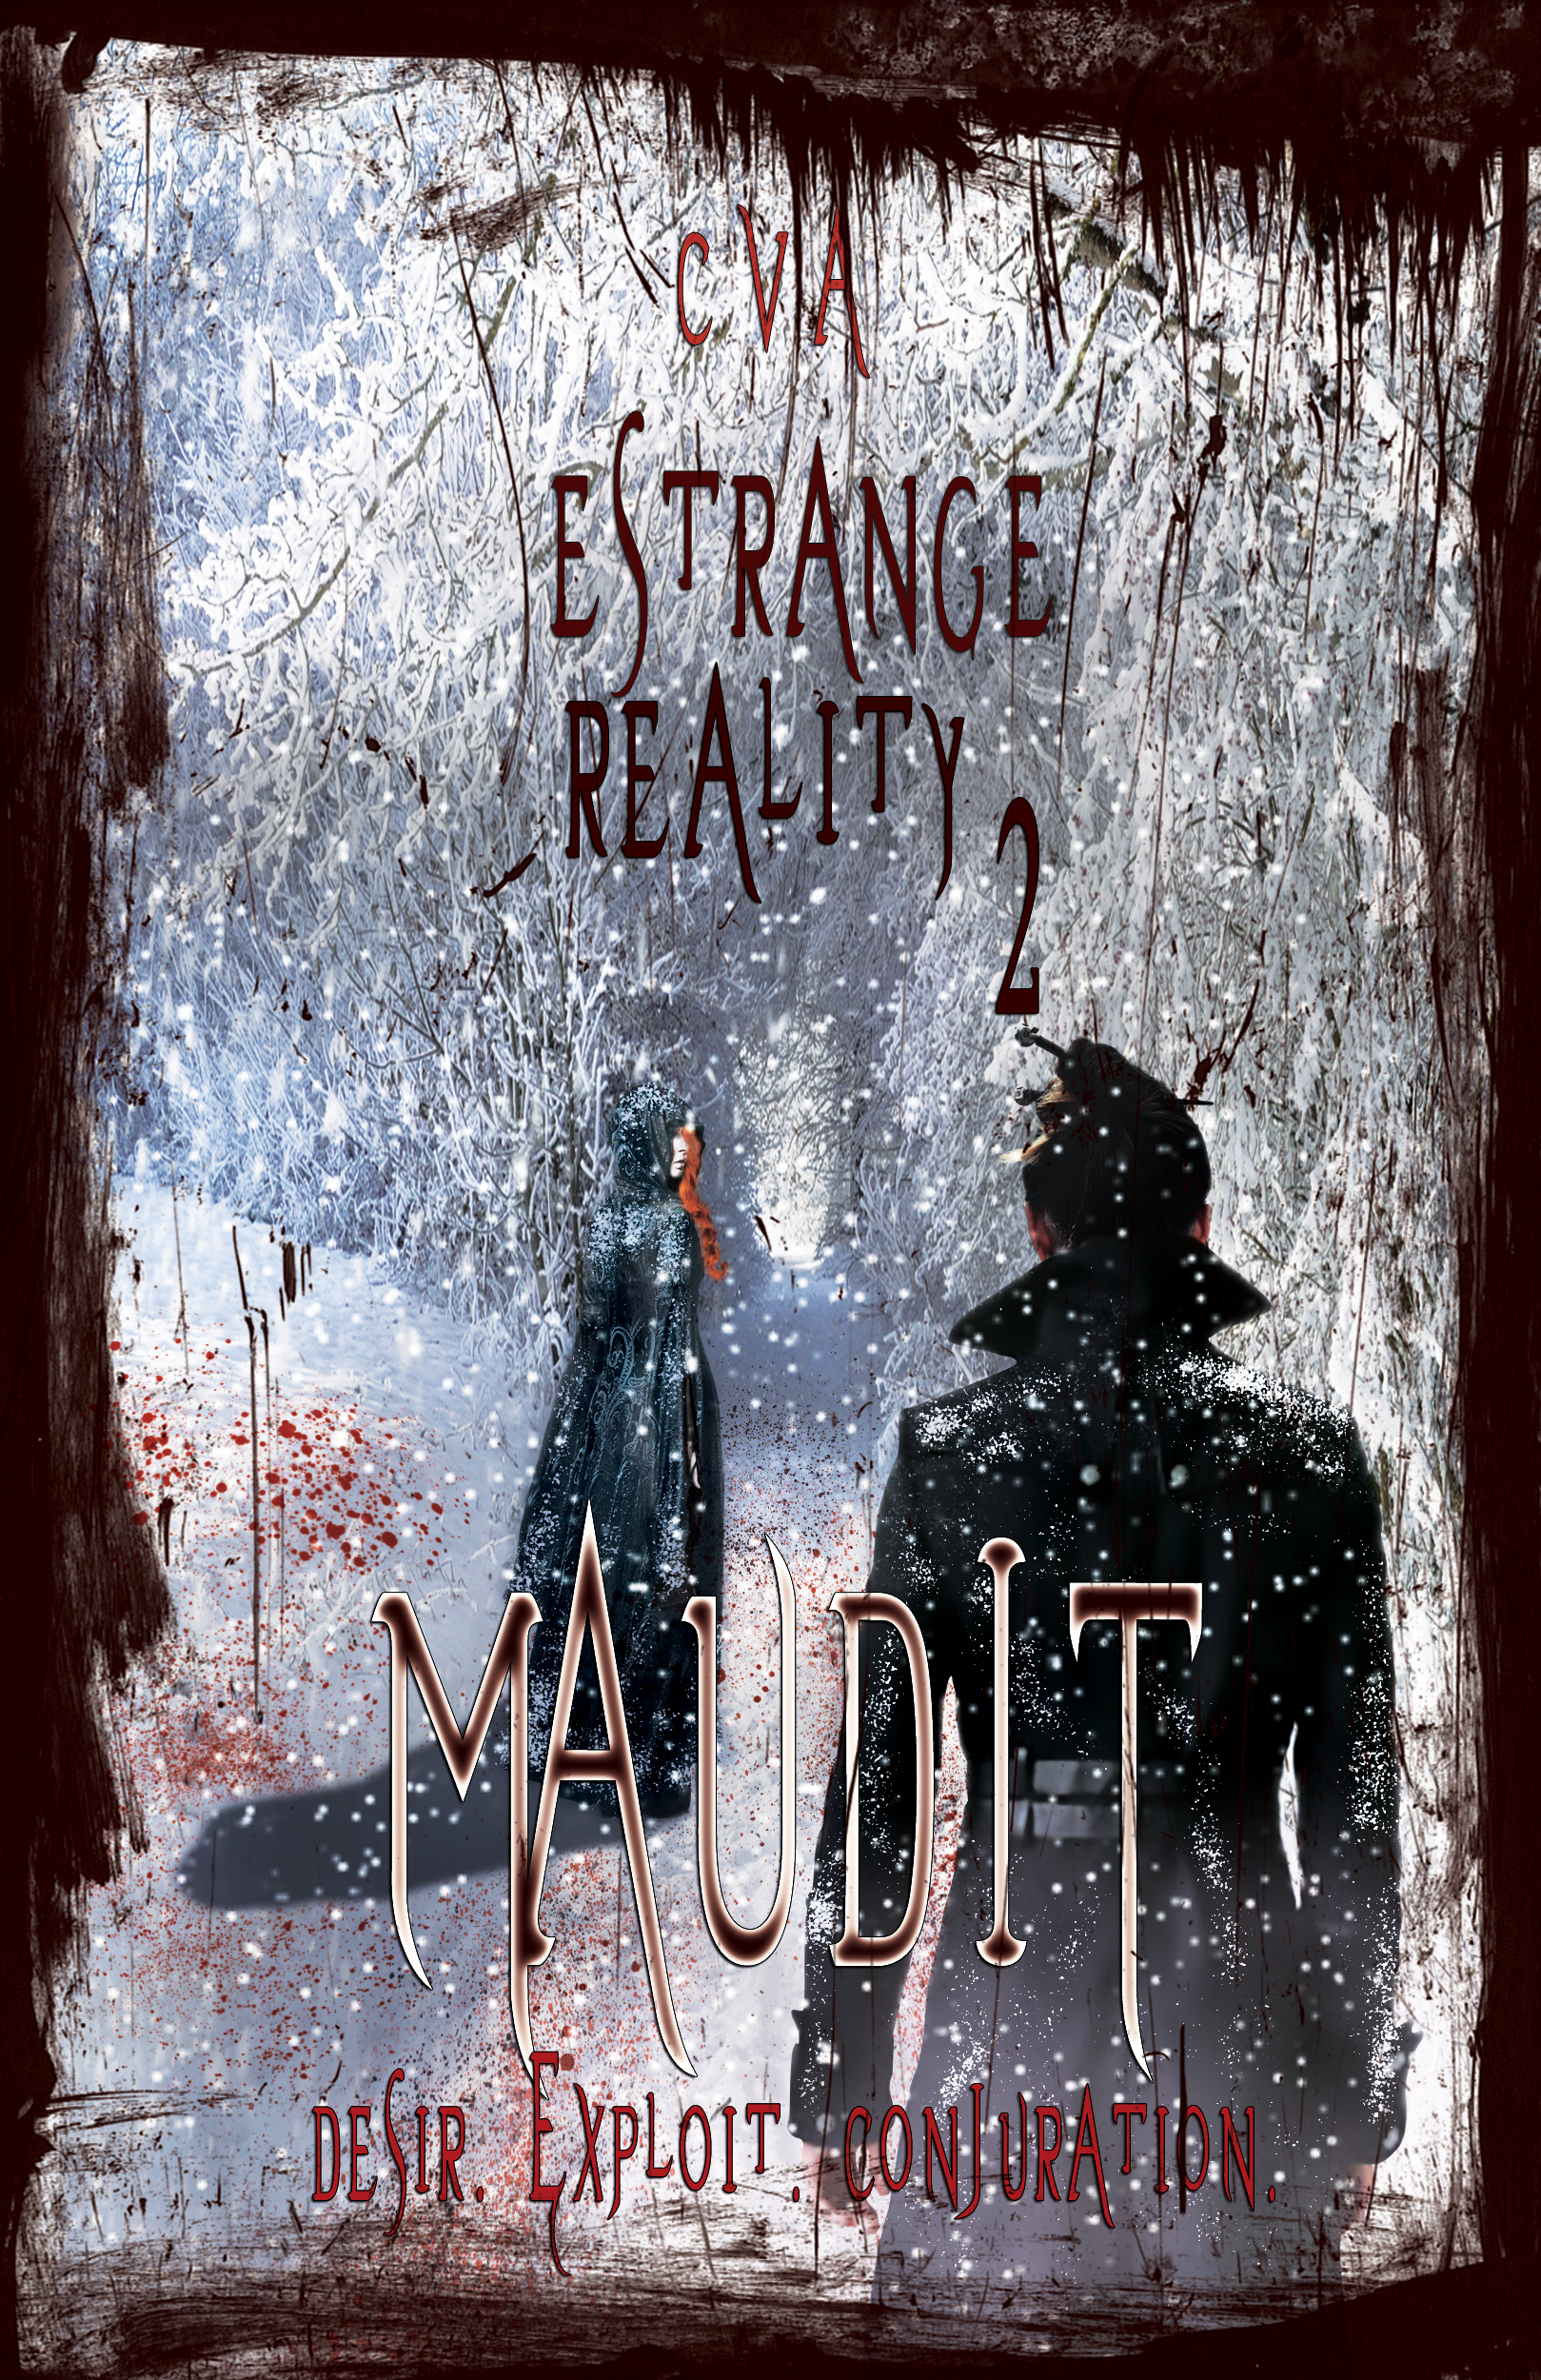 MAUDIT Estrange Reality II